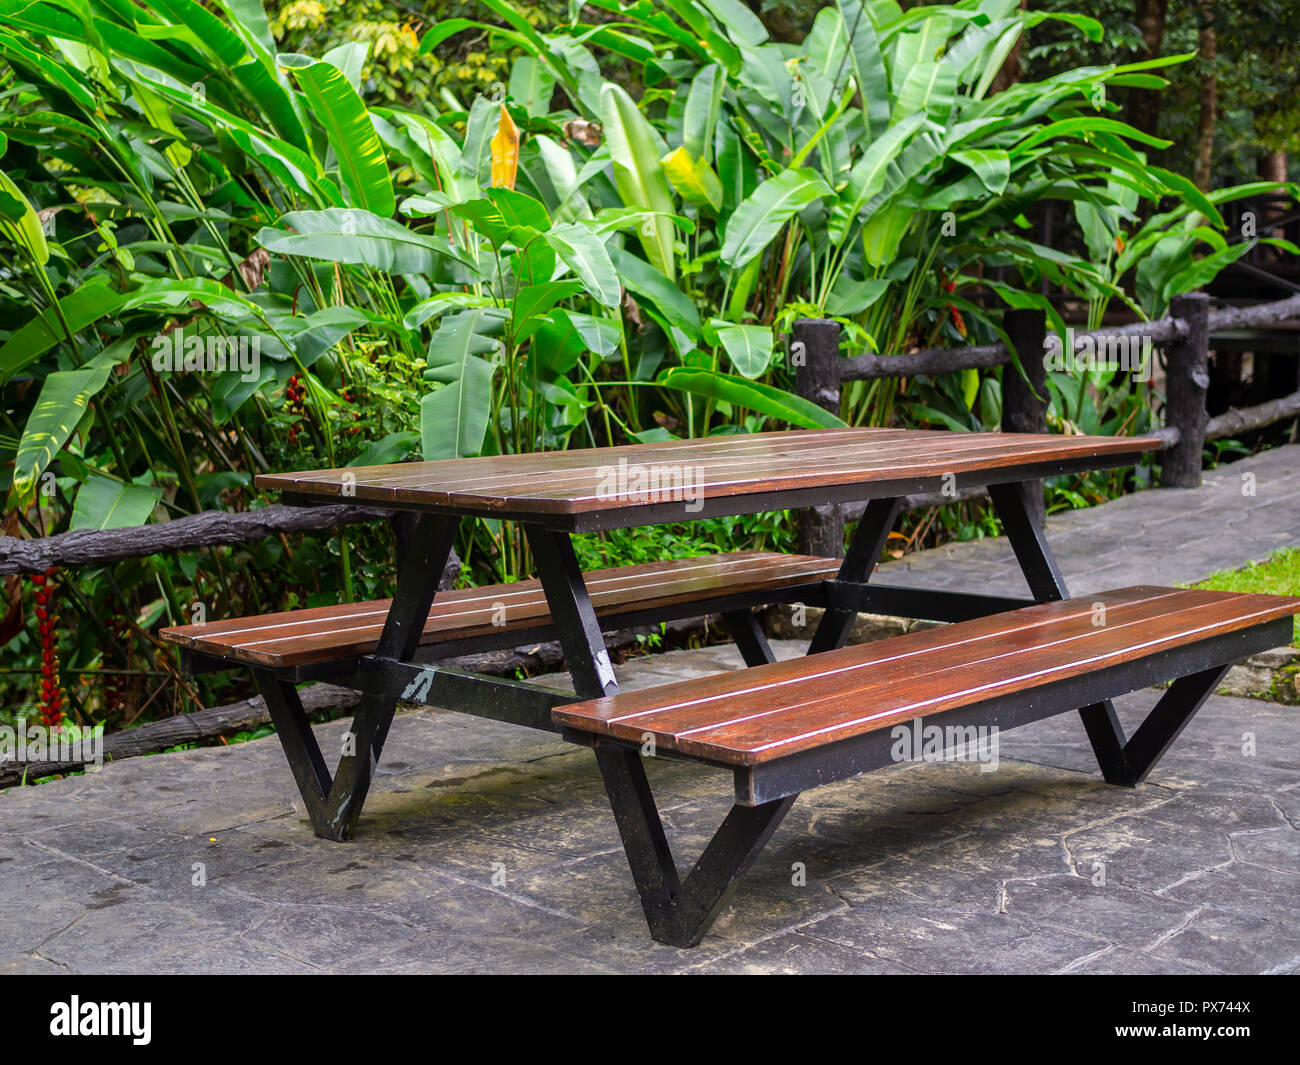 Wooden patio chair reclaimed wood outdoor dining table on tropical rainforest background. : wooden patio furniture - amorenlinea.org